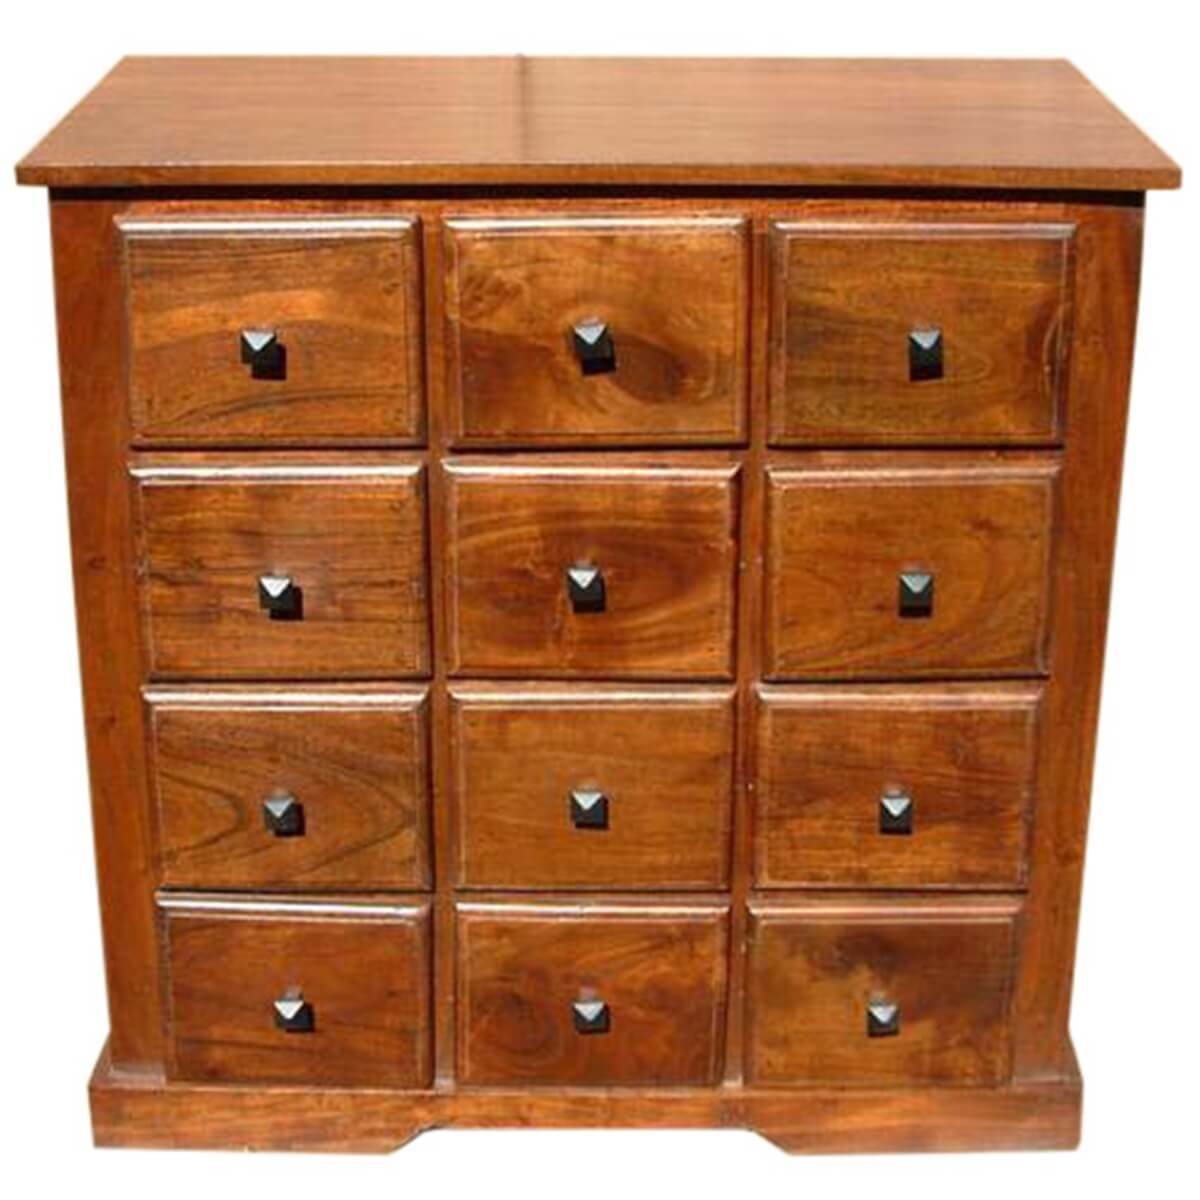 Best Handmade Wooden Bedroom Storage Dresser Chest With 12 Drawers With Pictures